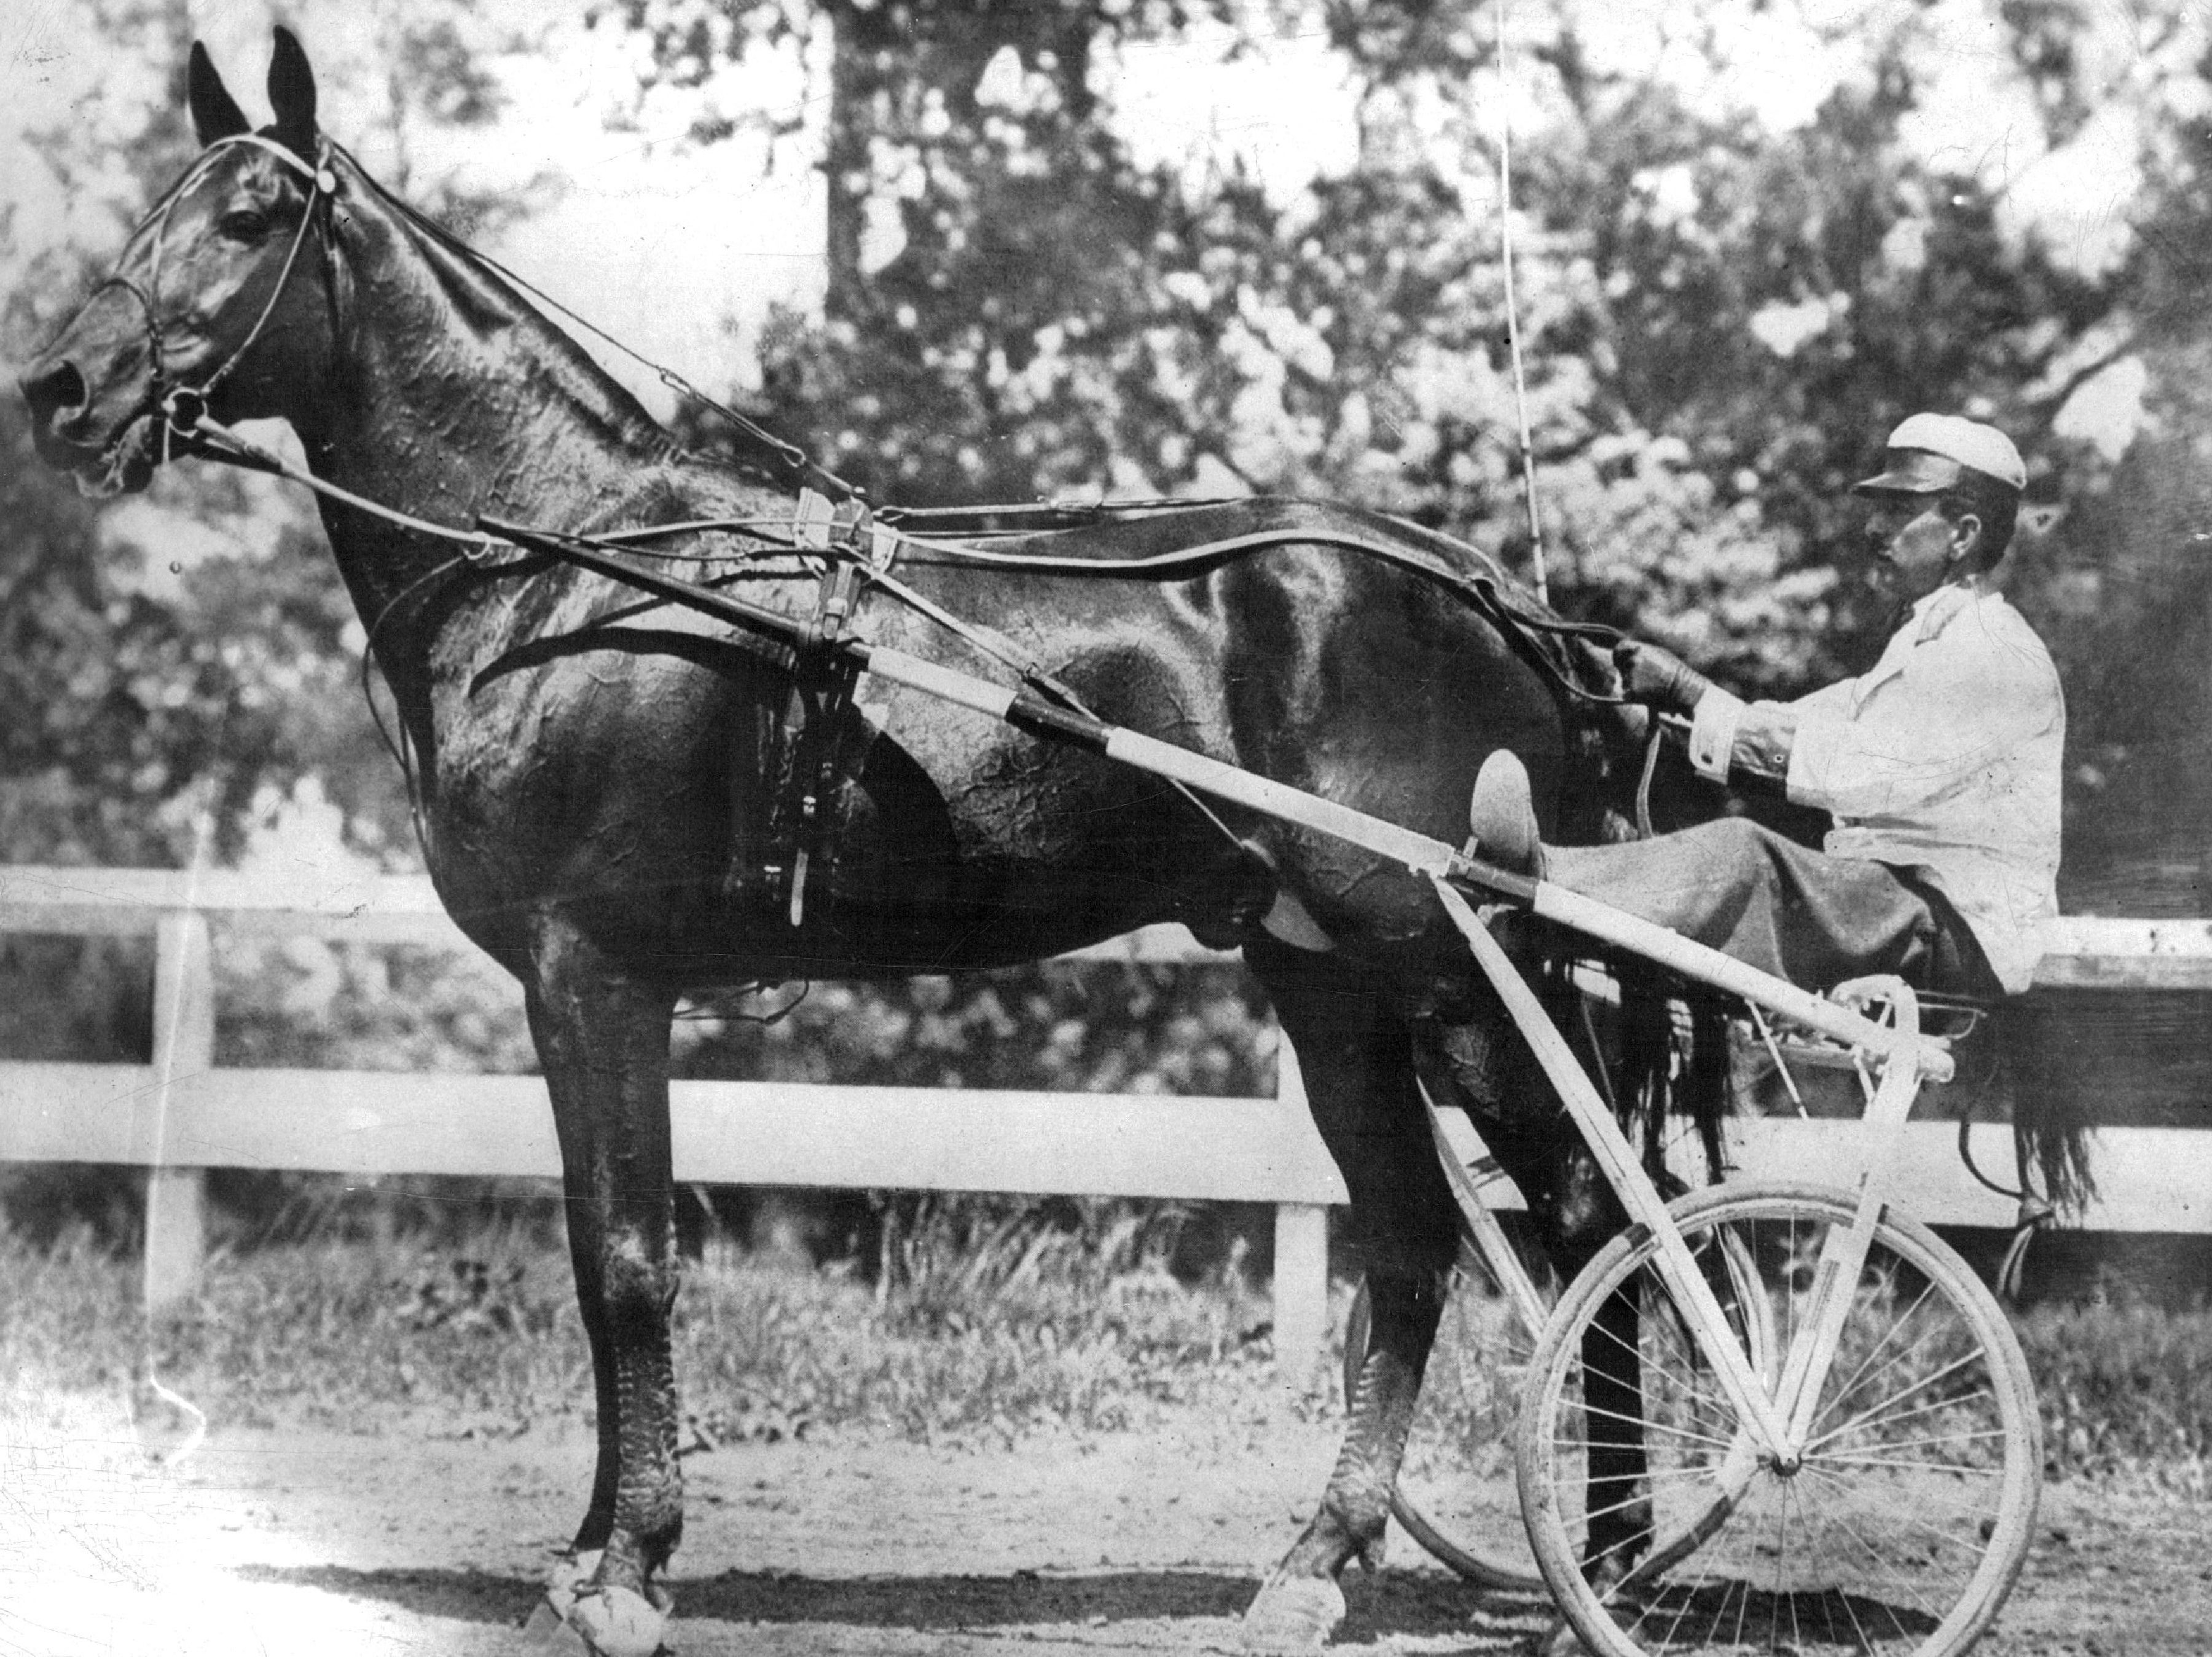 Dan Patch paced a record mile at the 1906 Minnesota State Fair, becoming a national celebrity and bringing fame to his owner Marion Savage.